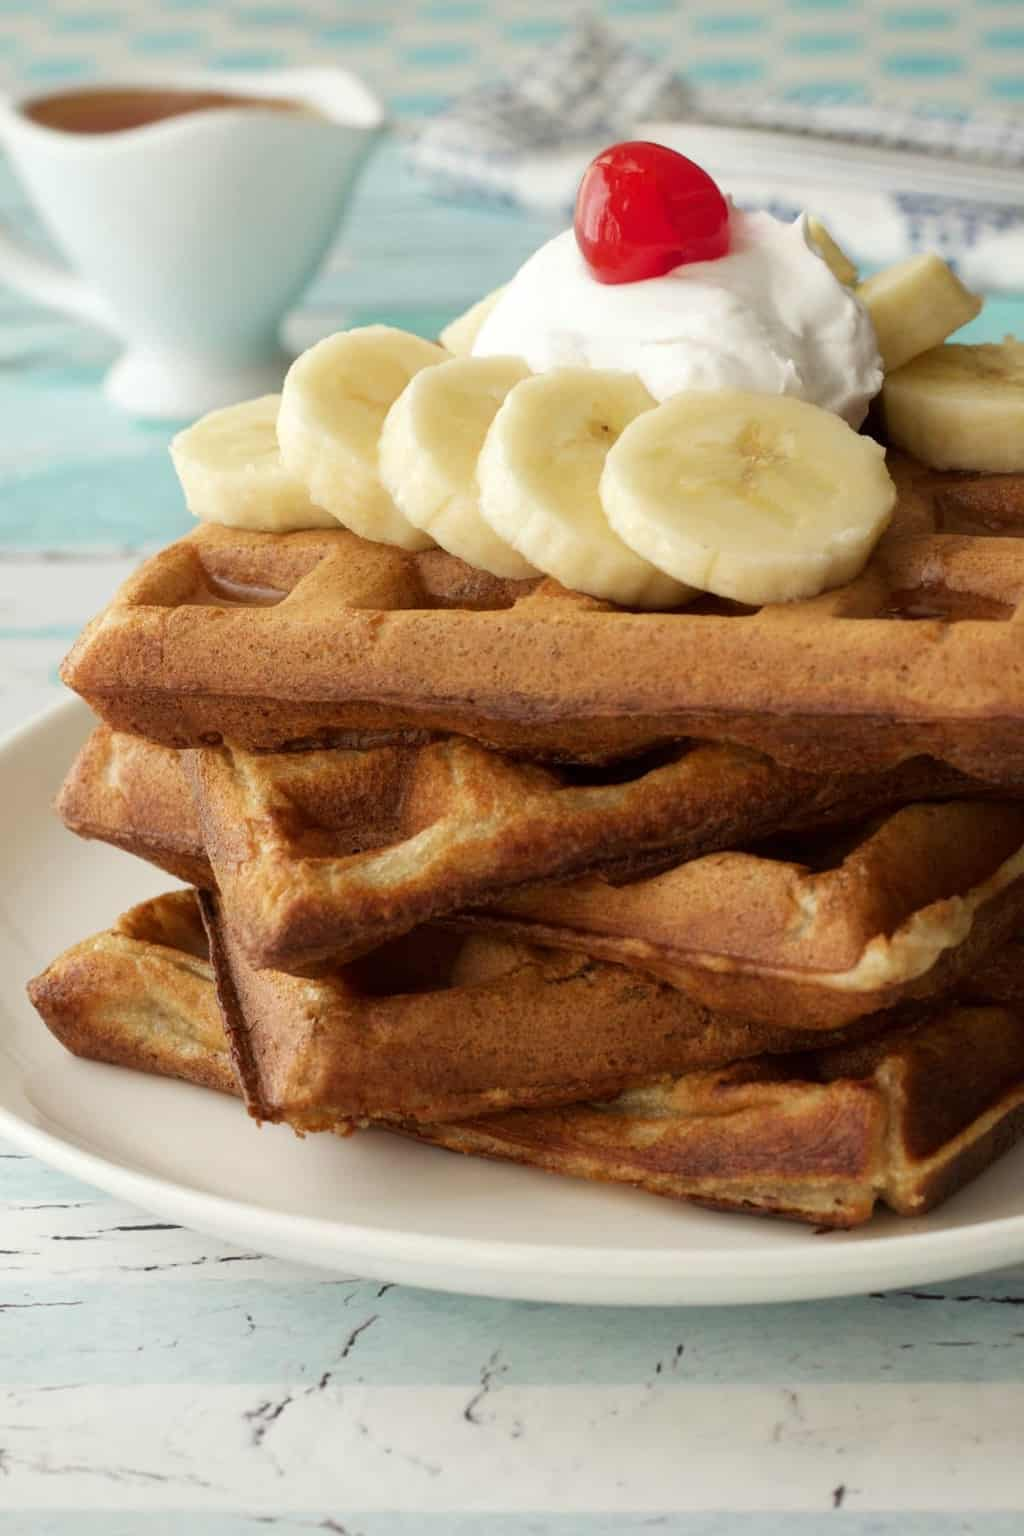 Golden Brown and Crispy Vegan Banana Waffles! Perfect for a vegan breakfast! #vegan #lovingitvegan #breakfast #bananawaffles